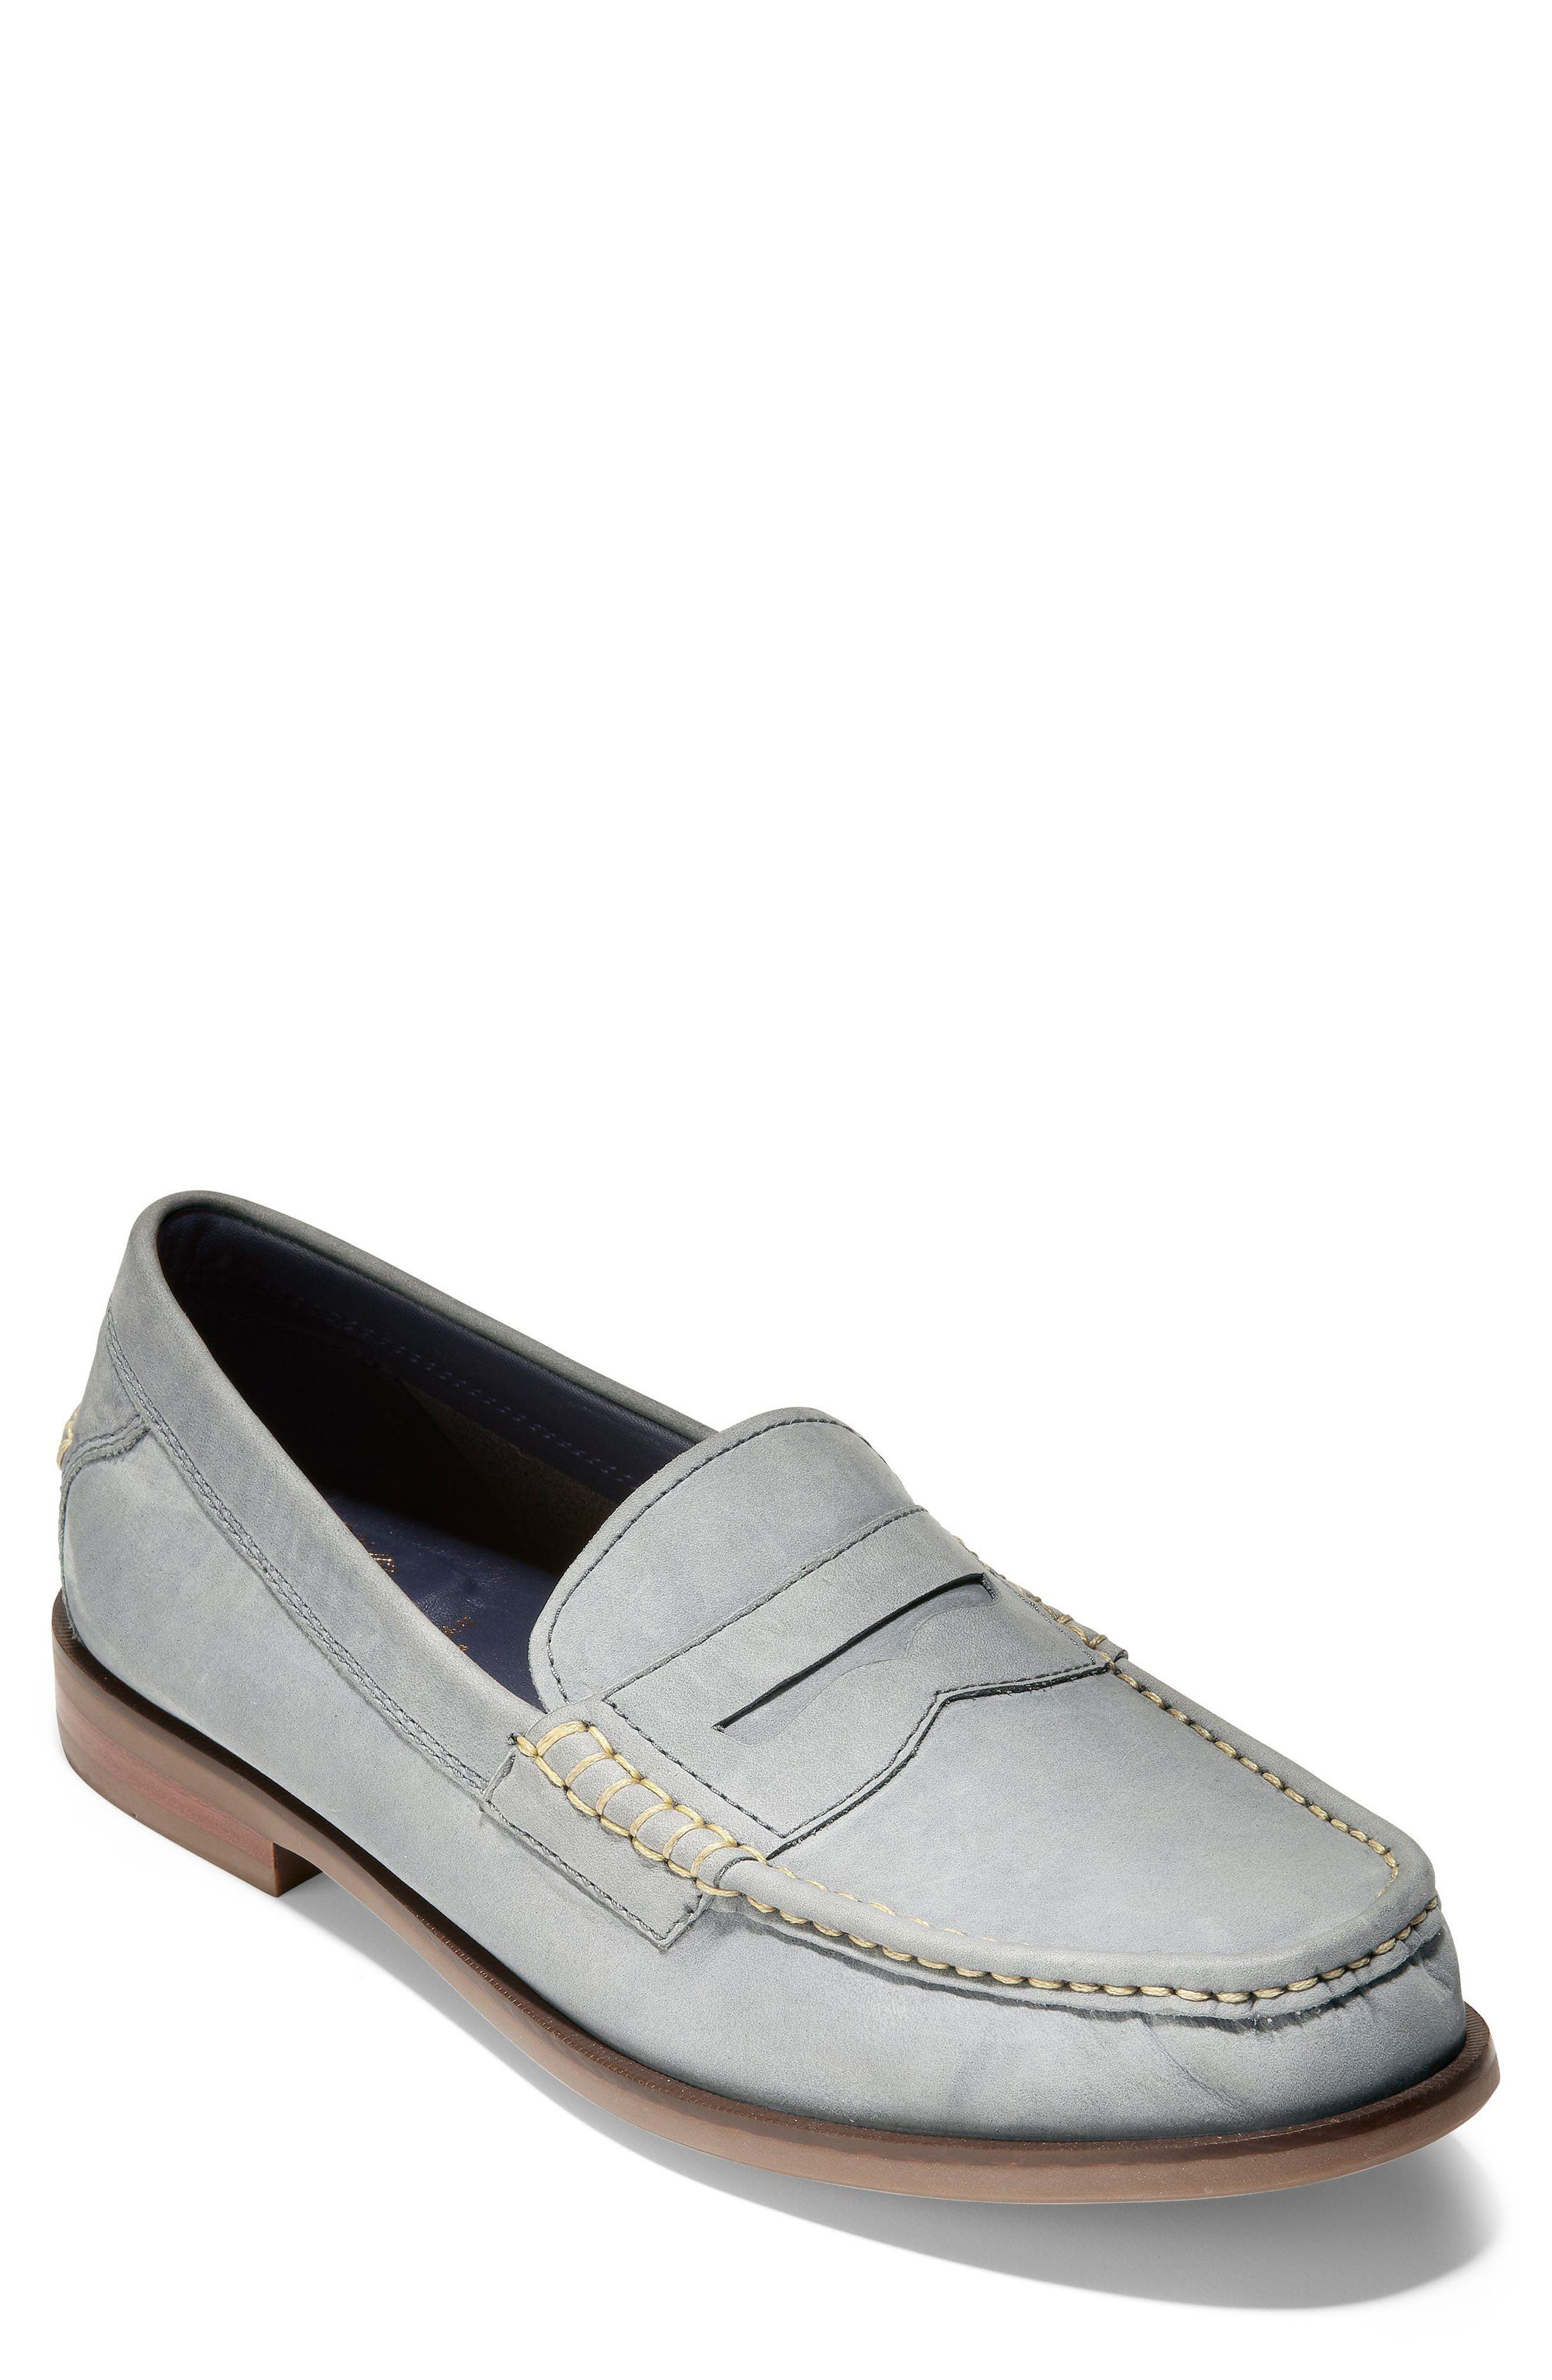 Pinch Friday Penny Loafer,                             Main thumbnail 1, color,                             Excalibur Nubuck